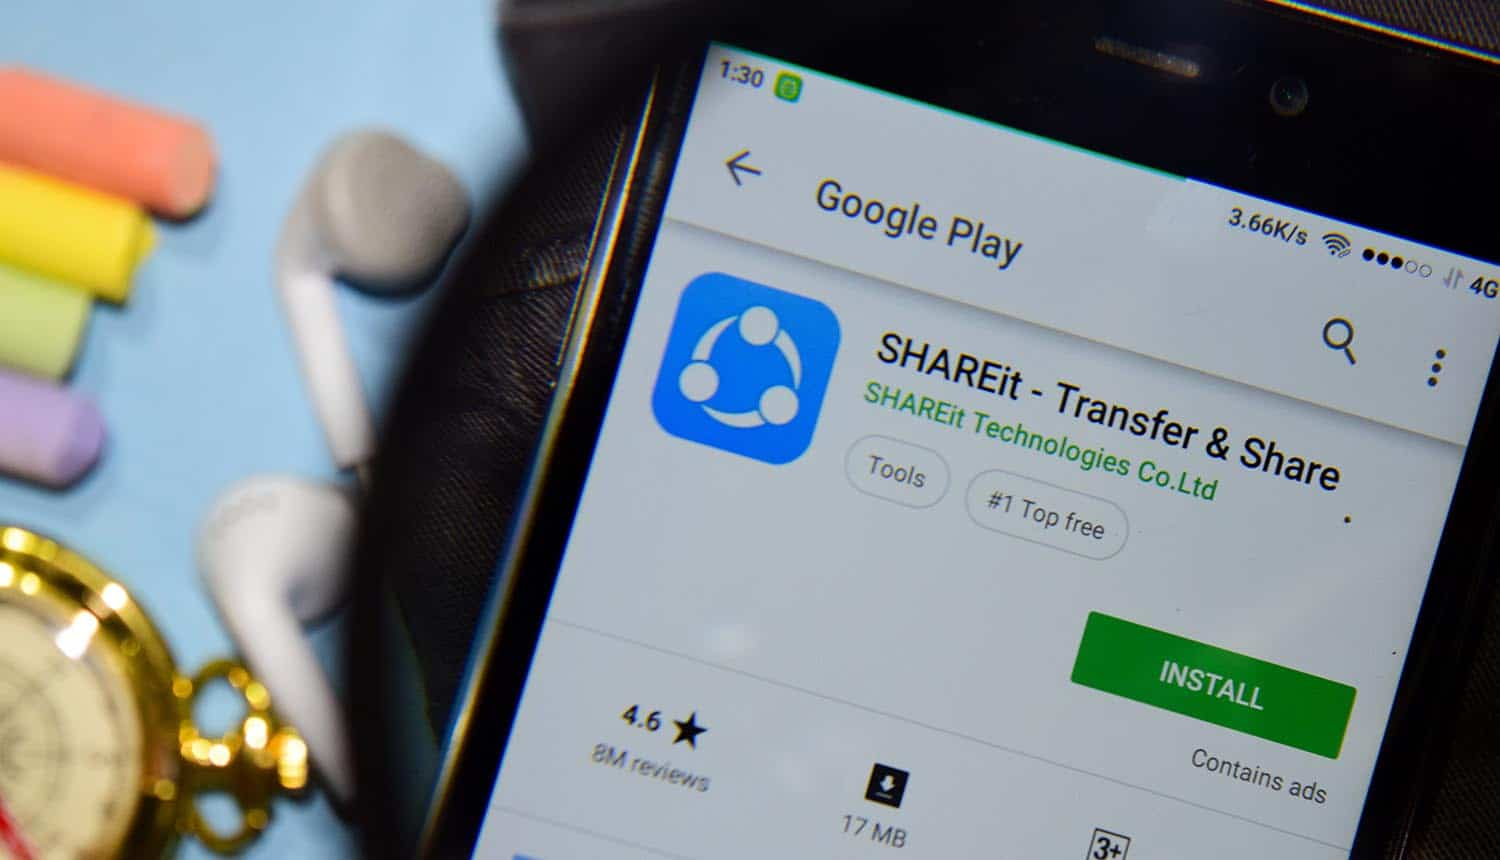 SHAREit app with magnifying on smartphone screen showing file-sharing app security flaw